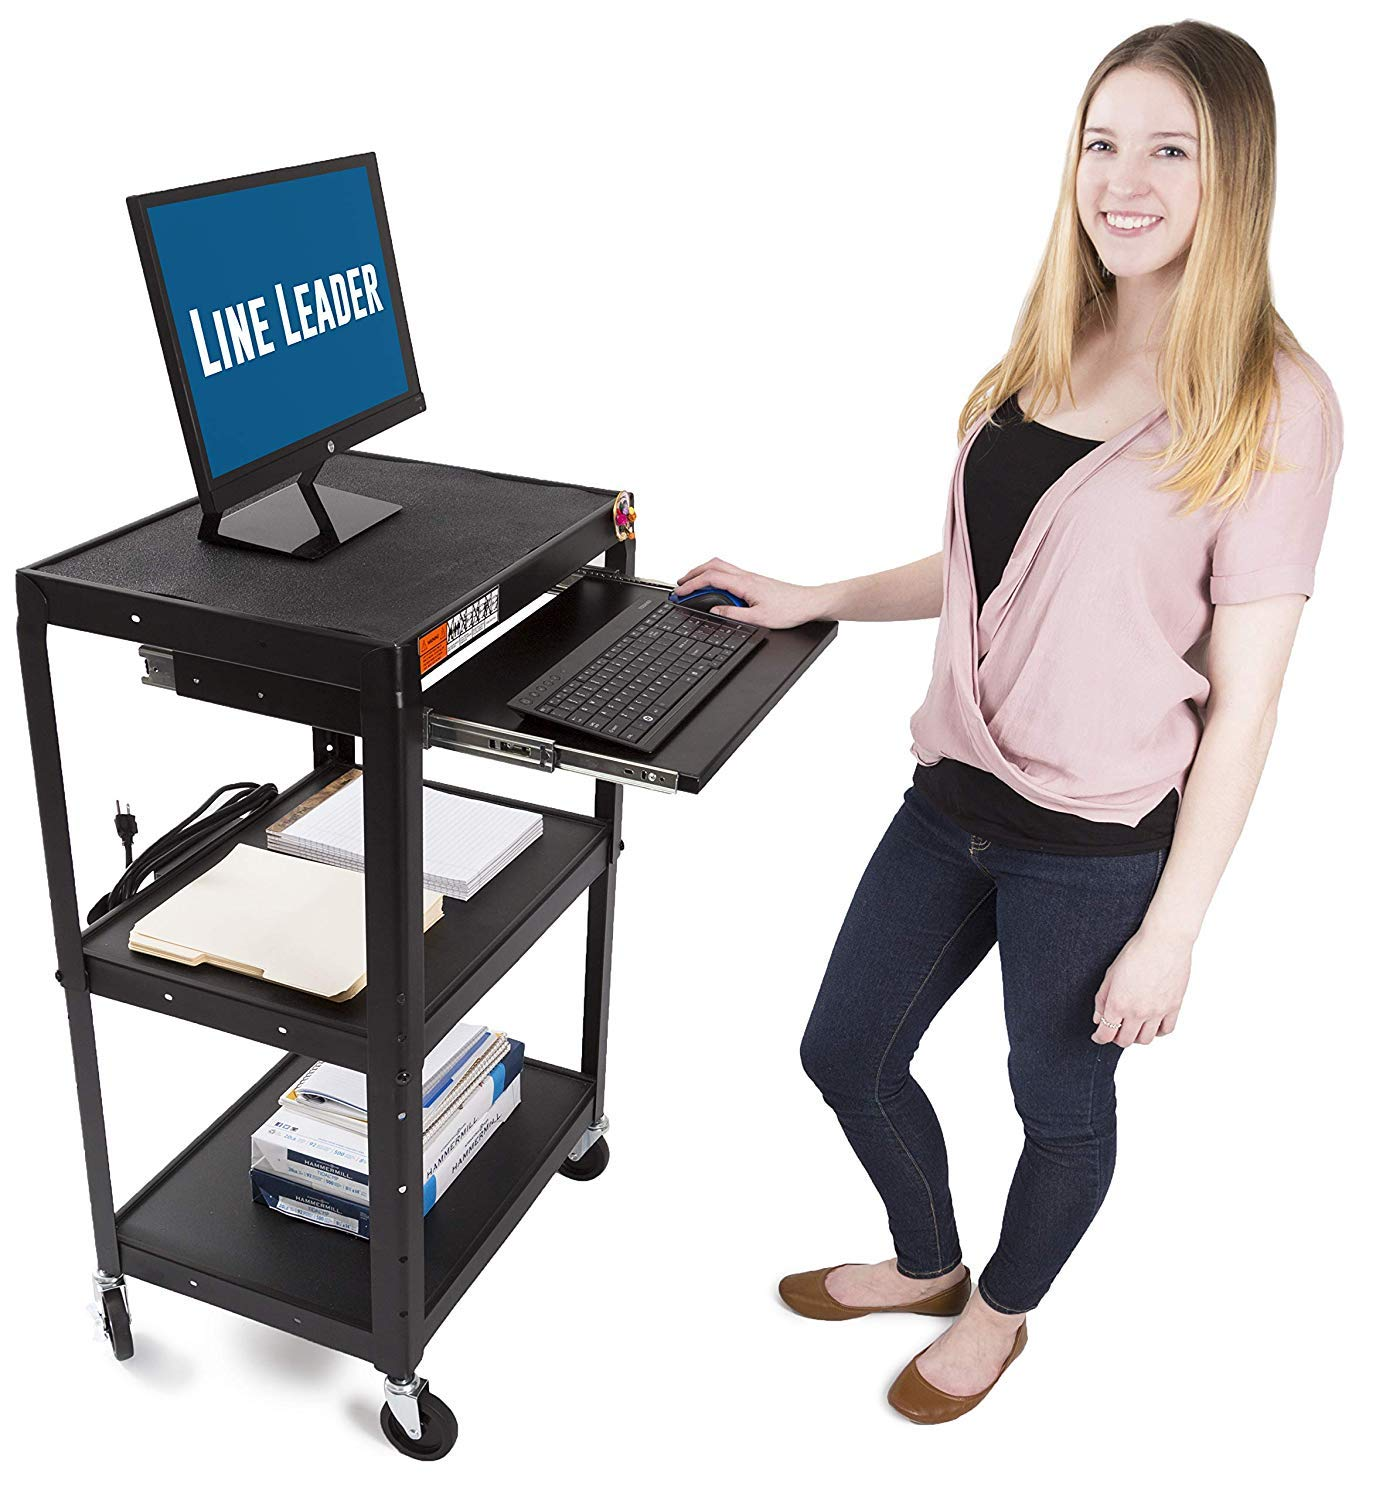 Line Leader AV Cart on Wheels - Includes Three Height Adjustable Shelves and Pullout Keyboard Tray - 15 ft Power Cord with Cord Management Included - Easy to Assemble (42 x 24 x 18 / Black) by Stand Steady